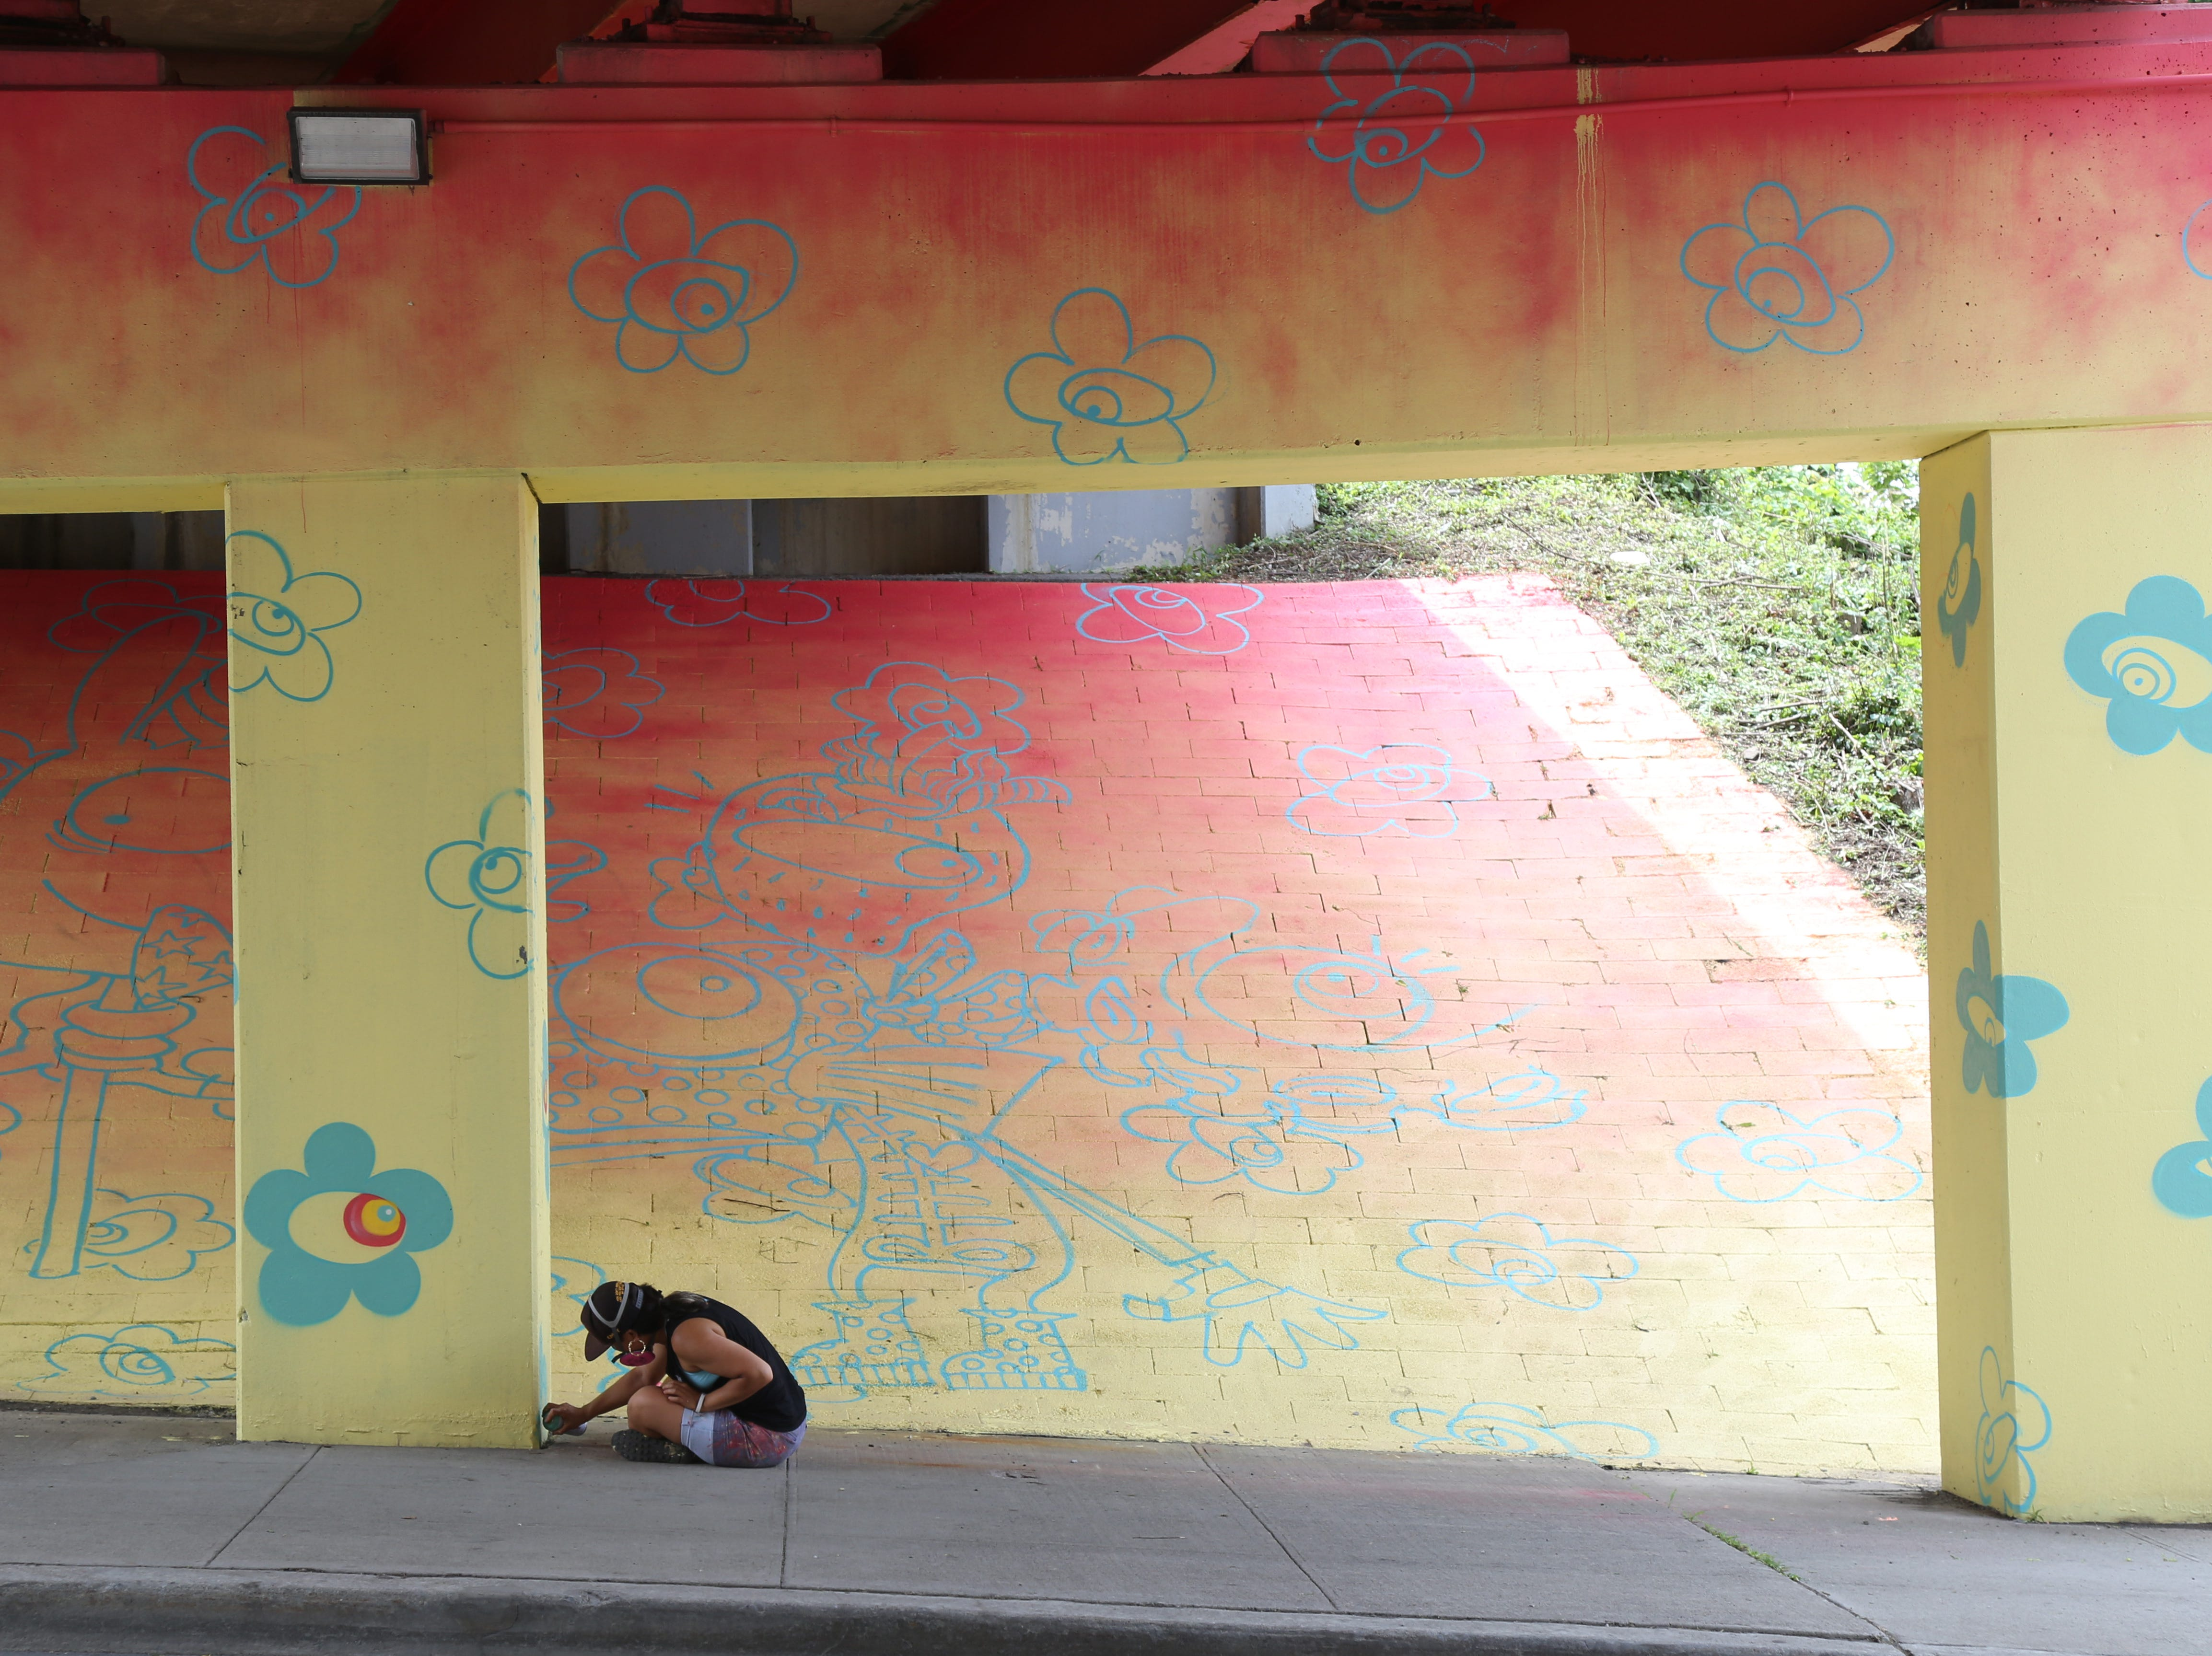 """Risa Tochigi, """"Boogie"""" of BoogieREZ, works on the Poughkeepsie Gateway mural, on the Route 9 Underpass at Main Street in the City of Poughkeepsie, on July 27, 2018. The mural was commissioned by the Poughkeepsie Alliance in collaboration with Arts Mid-Hudson and the O+ festival."""